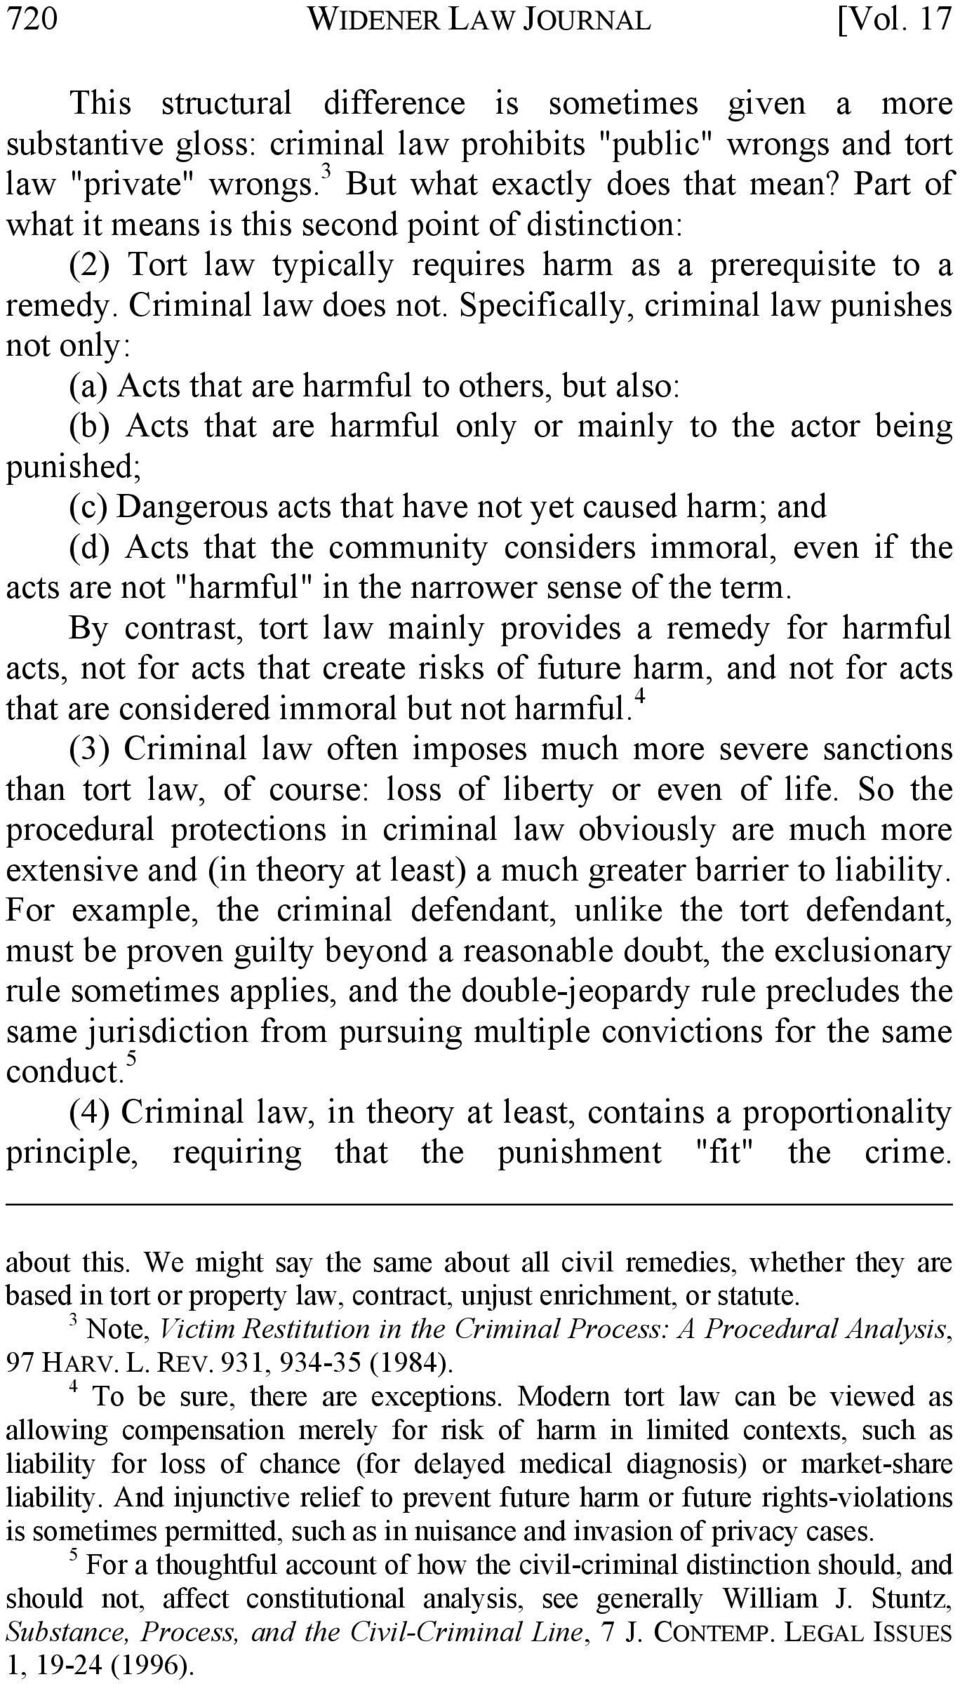 Specifically, criminal law punishes not only: (a) Acts that are harmful to others, but also: (b) Acts that are harmful only or mainly to the actor being punished; (c) Dangerous acts that have not yet